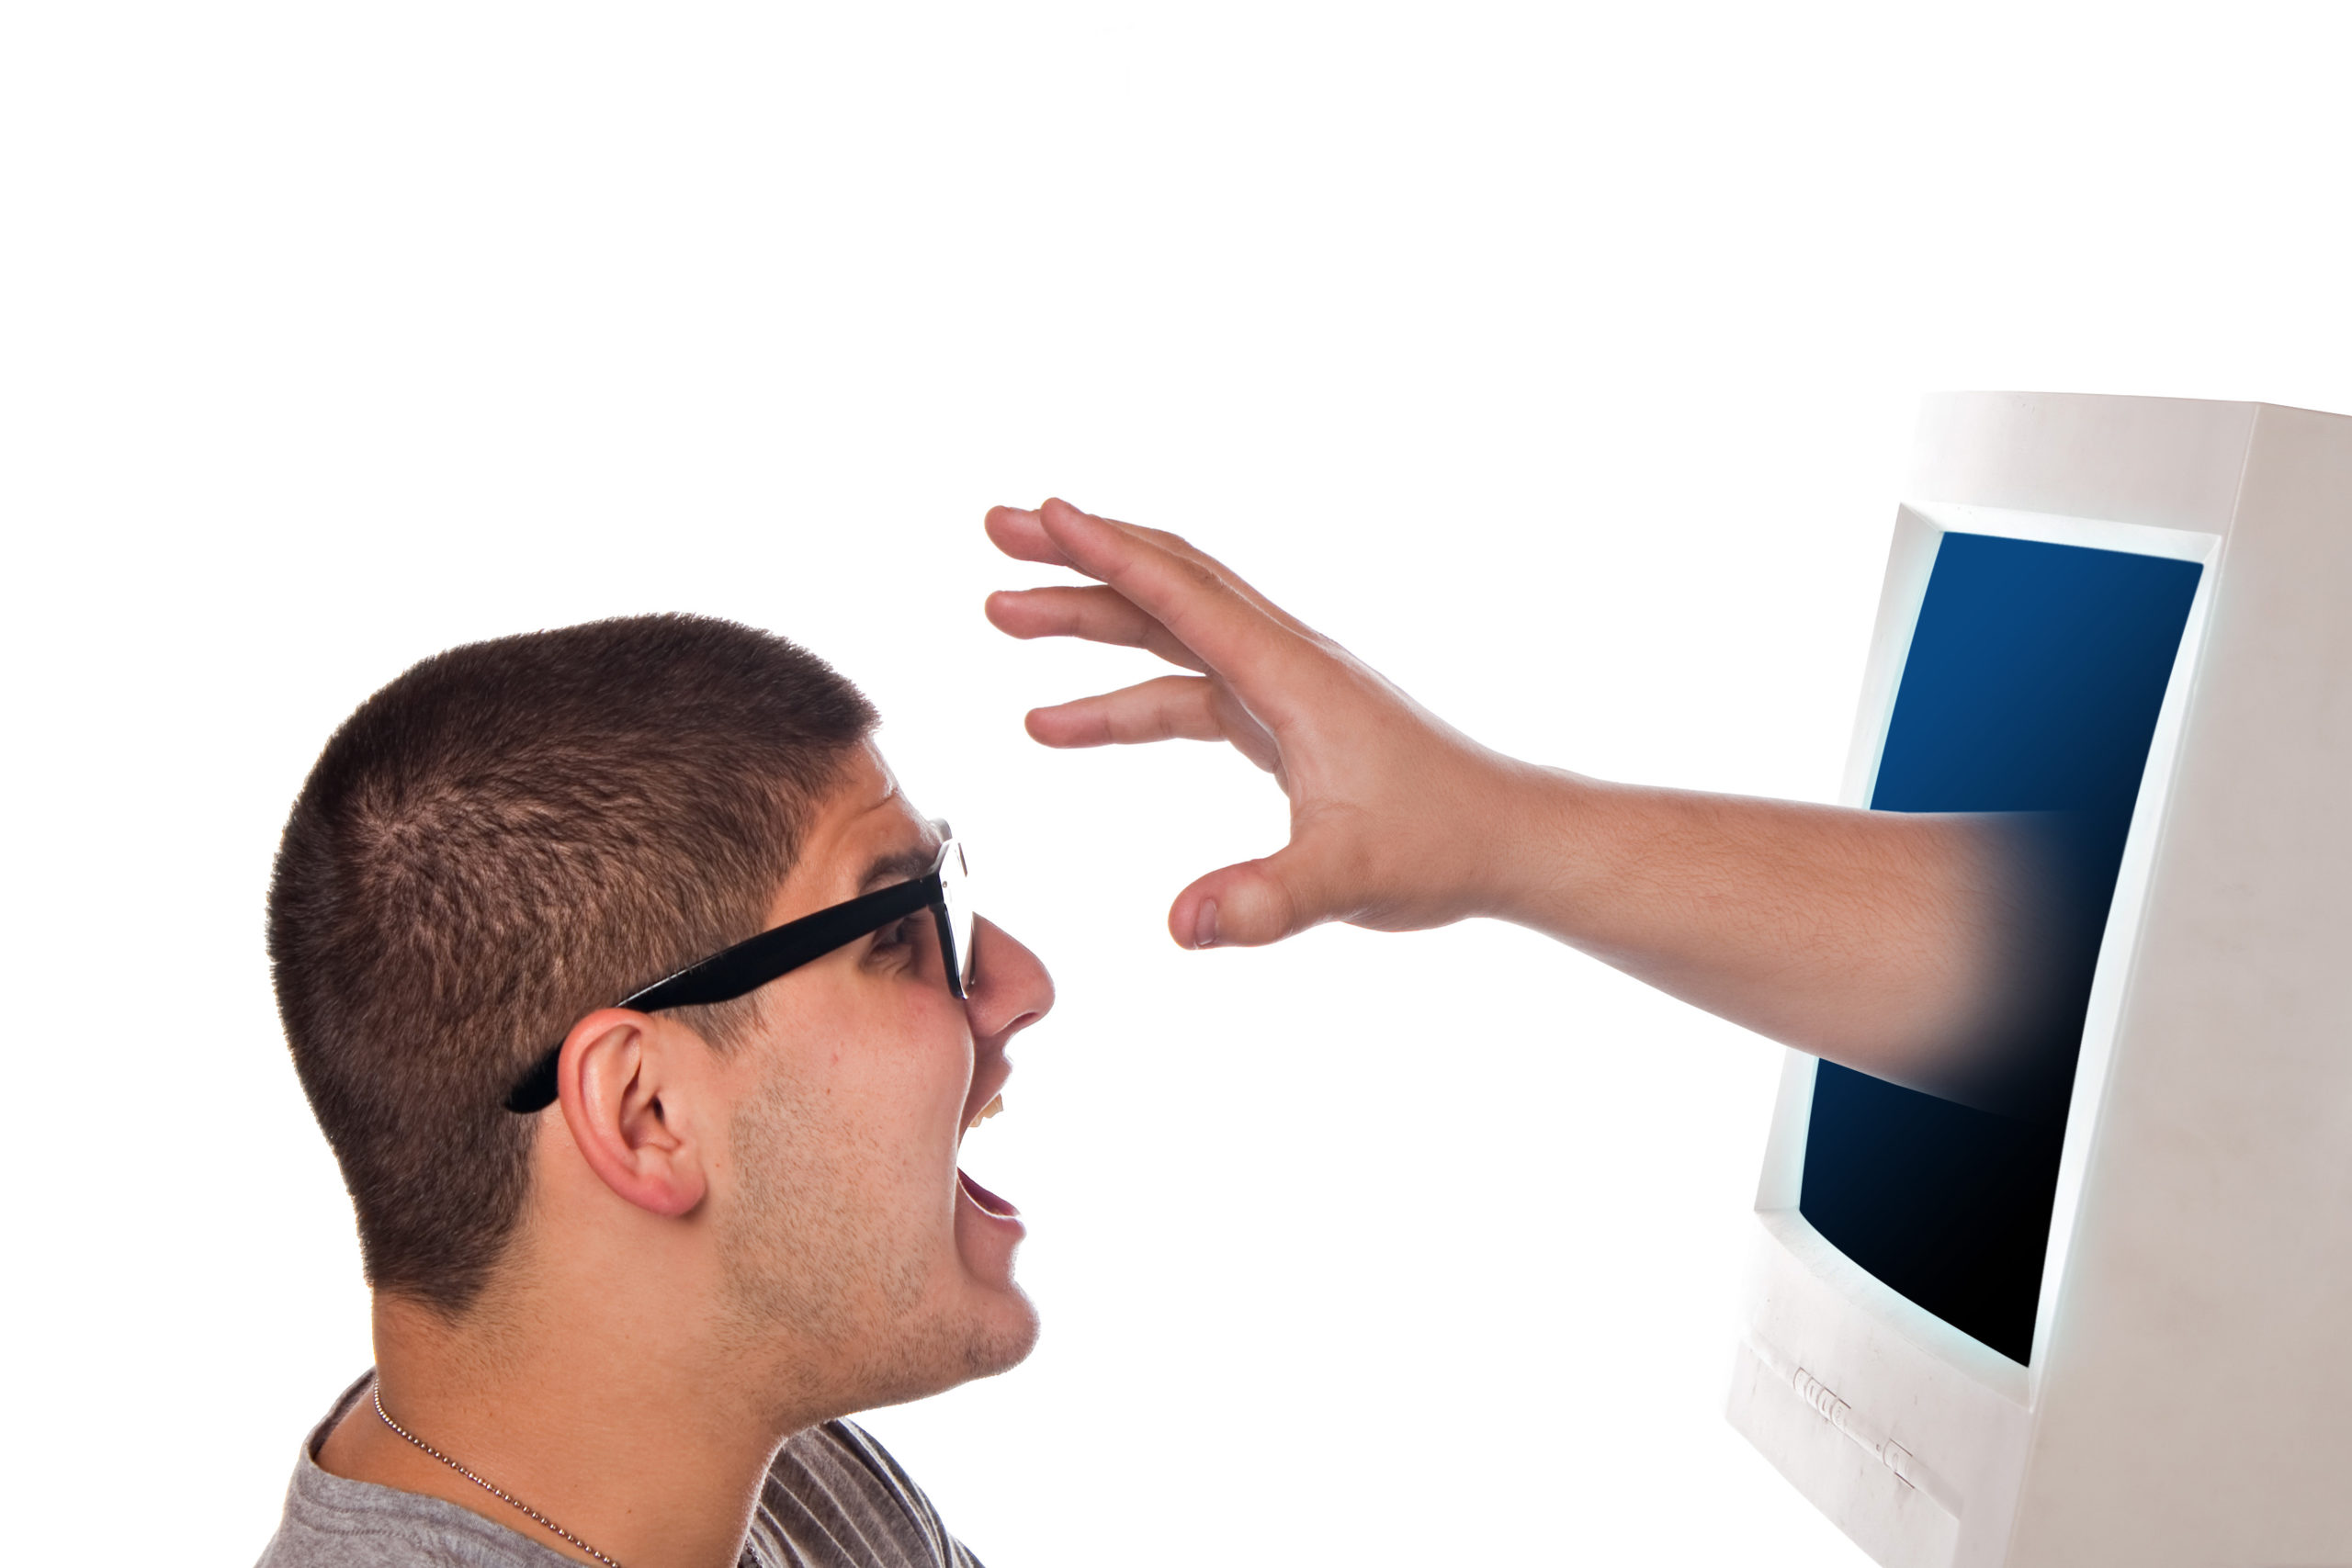 hand reaches out from computer monitor